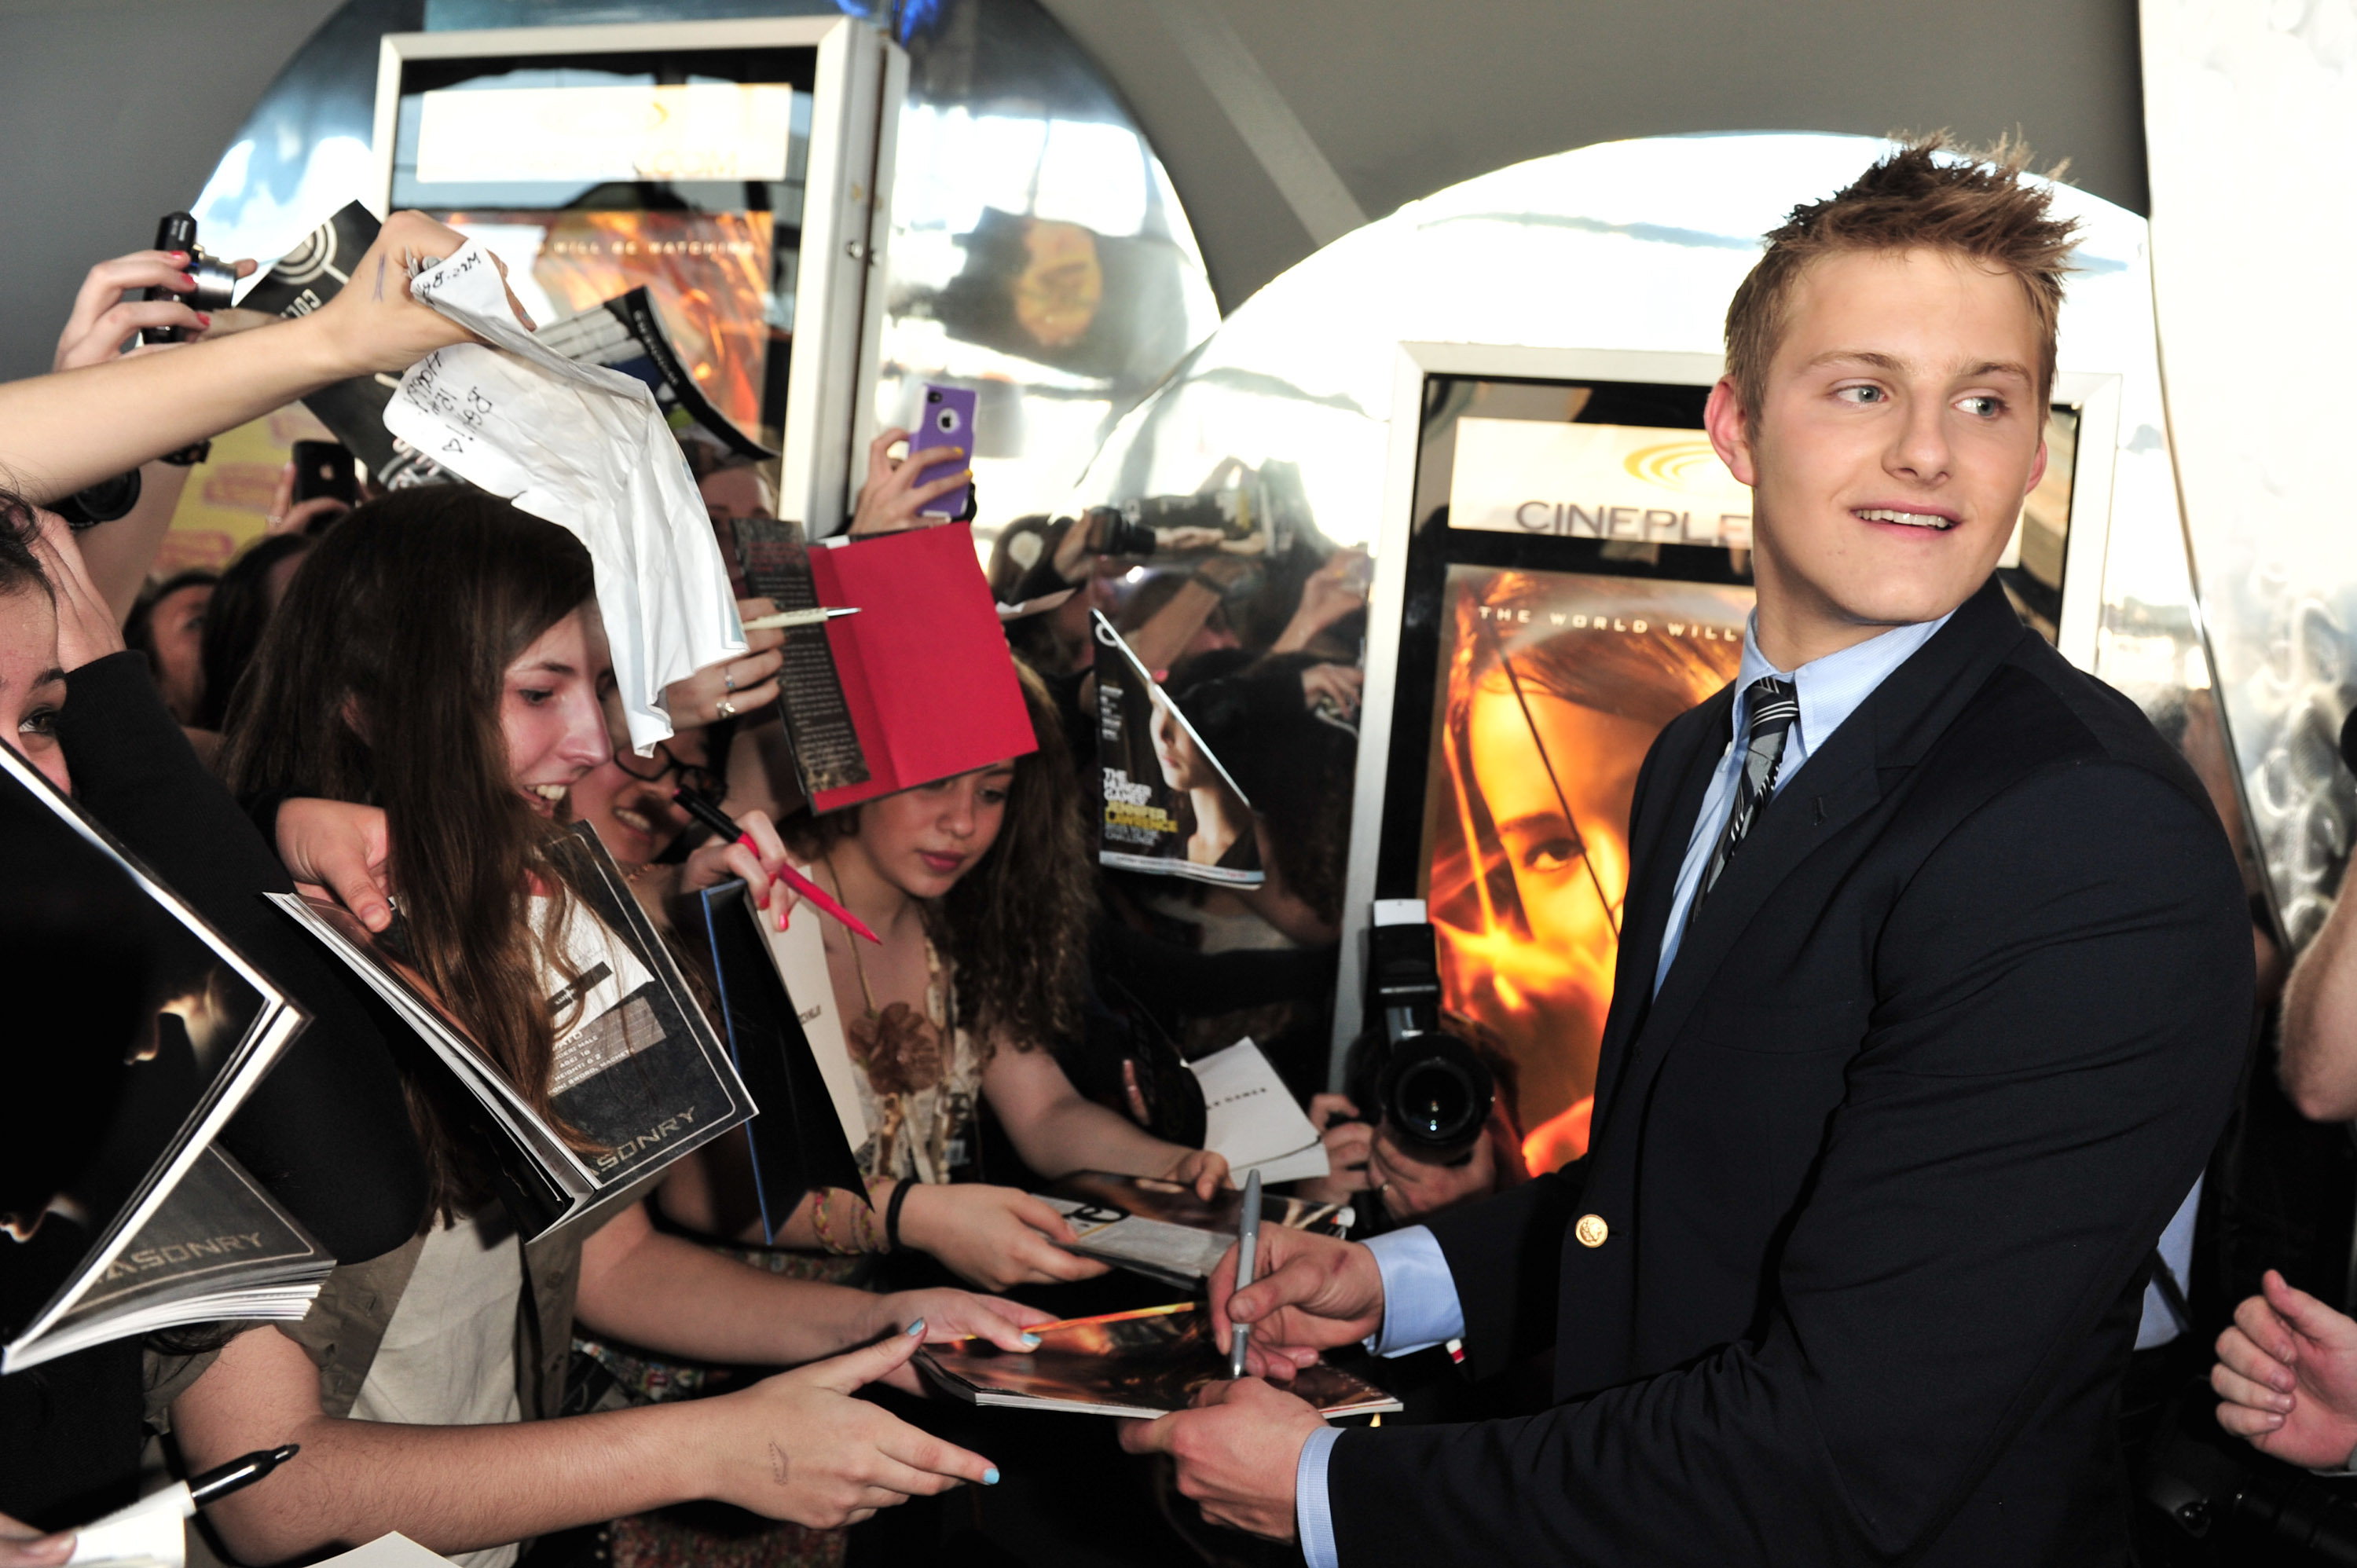 Alexander Ludwig at an event for The Hunger Games (2012)